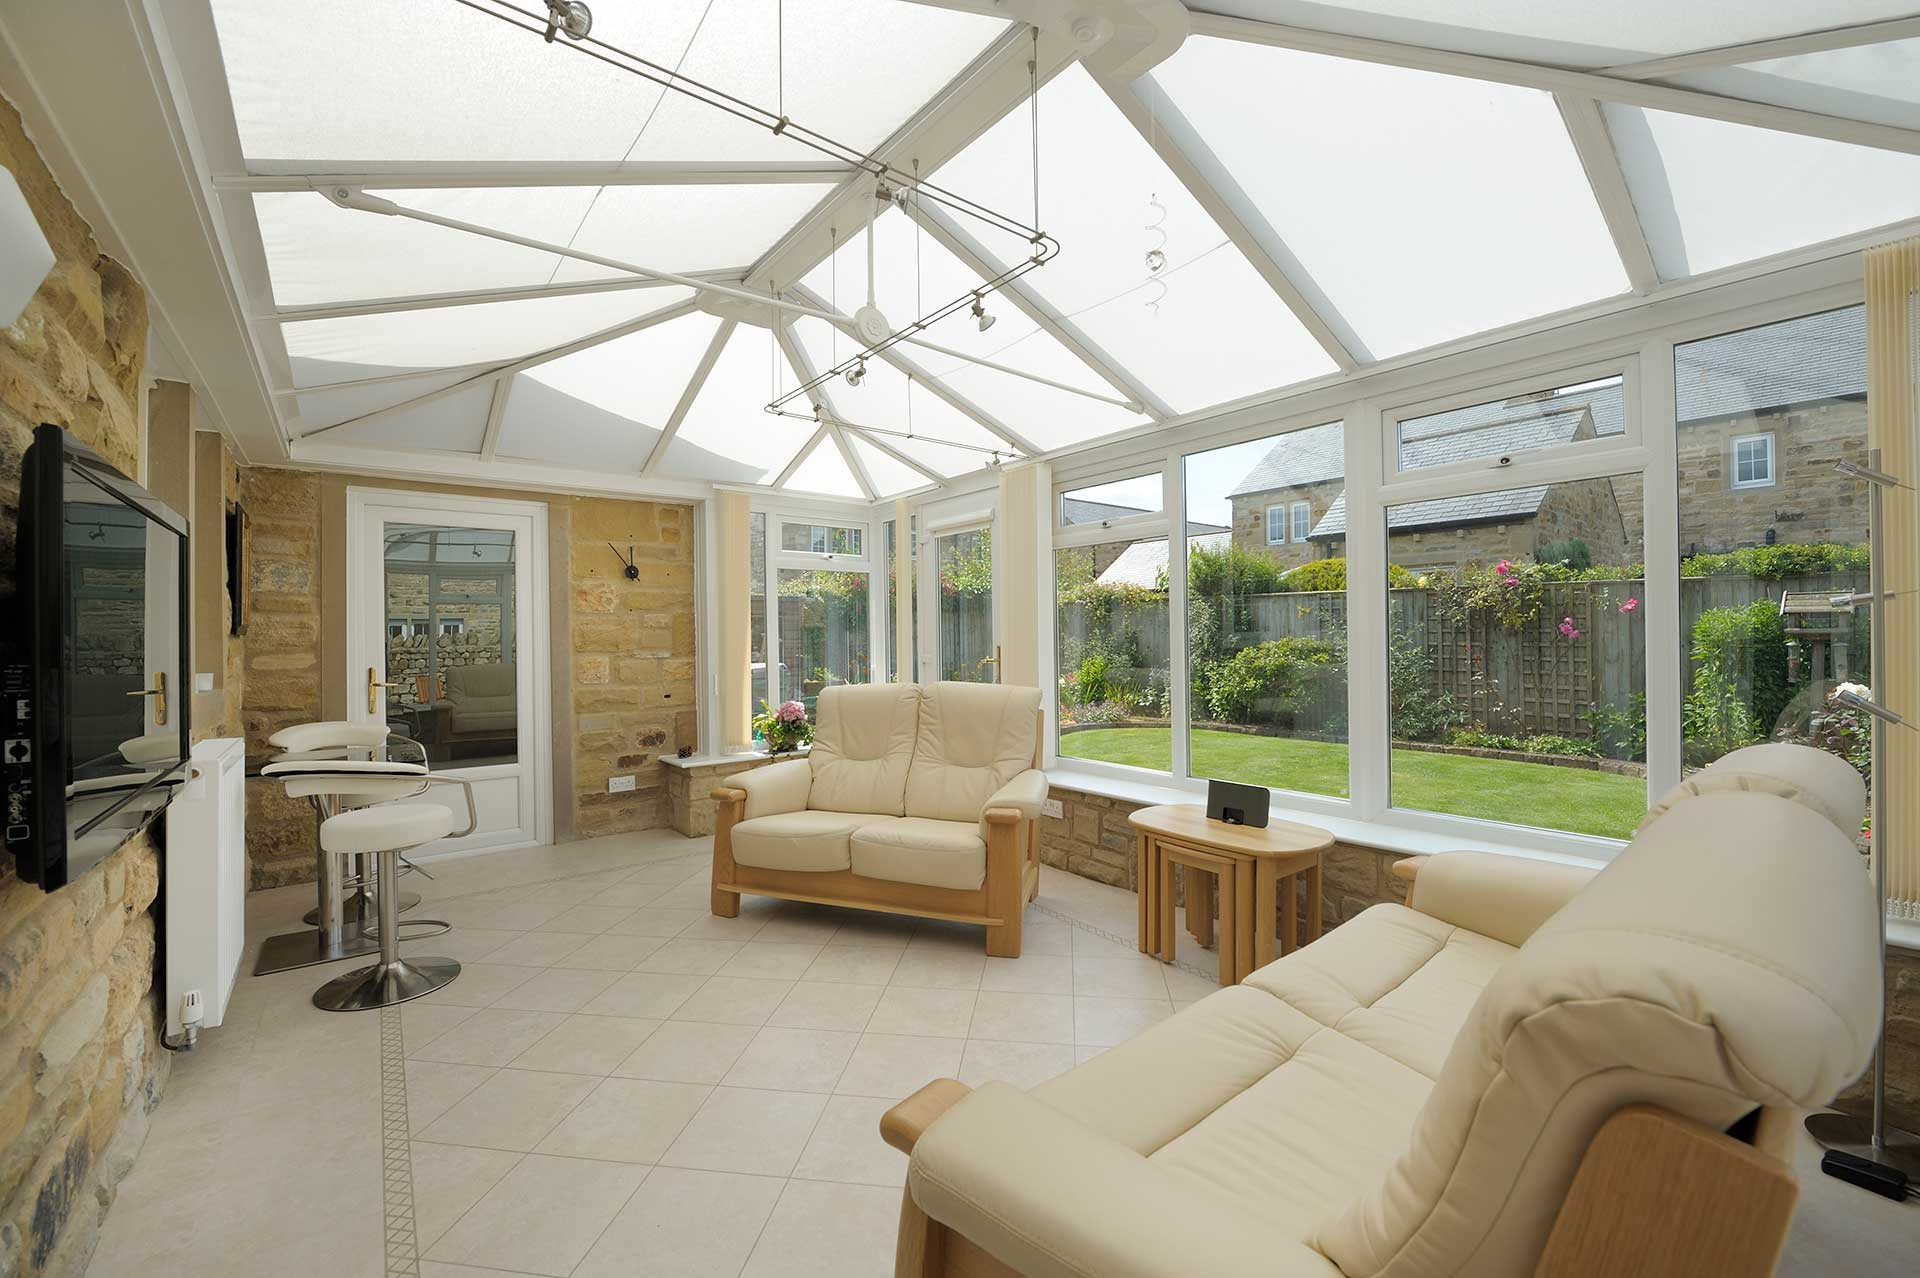 Lean-To Conservatories or Victorian Conservatories – Which is Better?